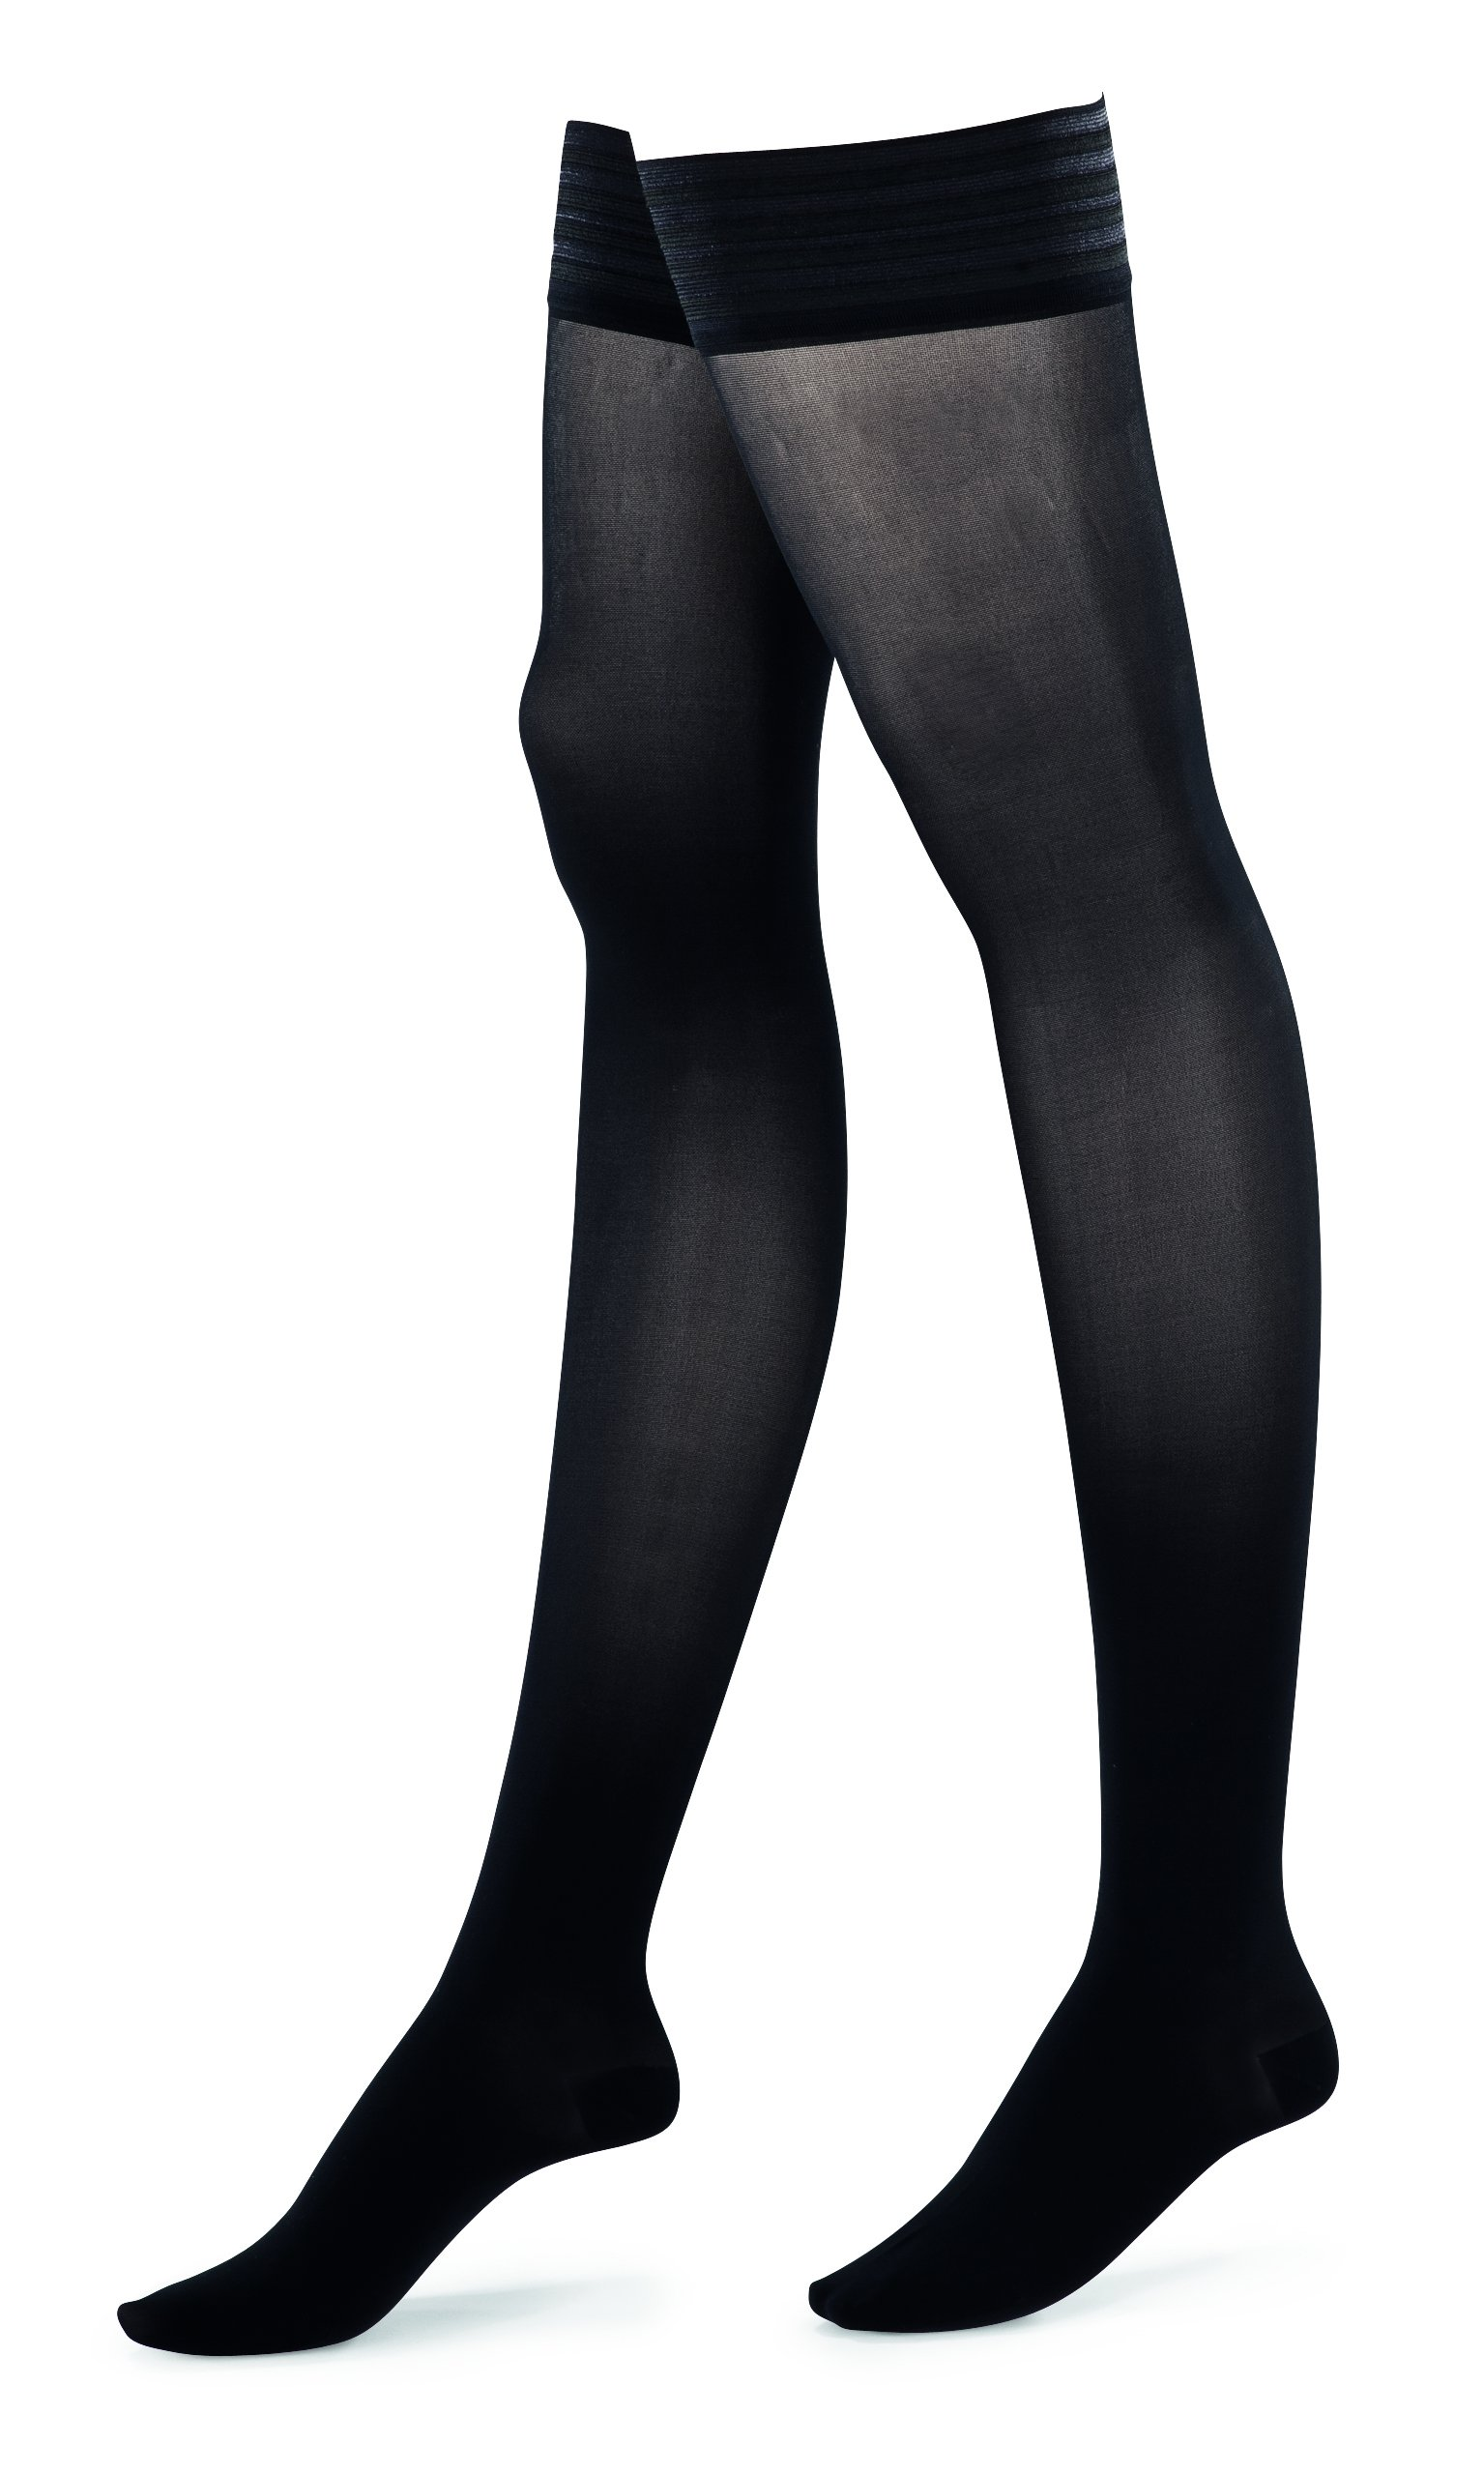 ITEM m6 Women's Compression Stay-Up Translucent Thigh High Stockings, Black, Large, Tall